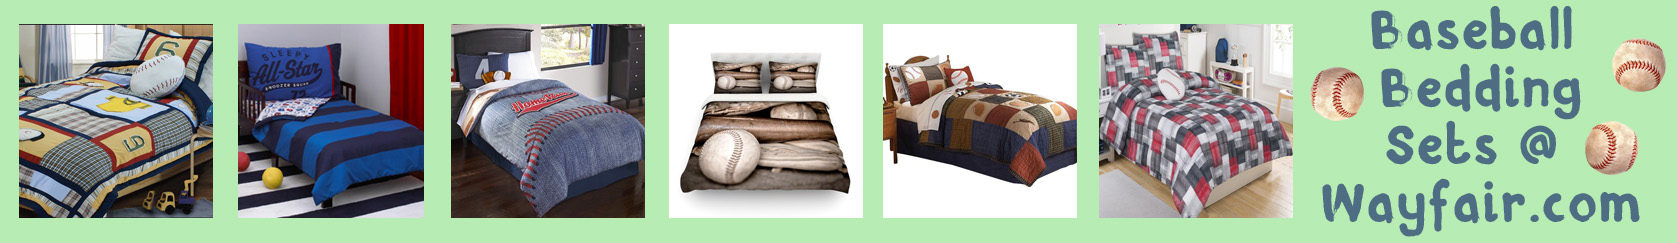 wayfair baseball bedding banner thin bright light green with baseballs